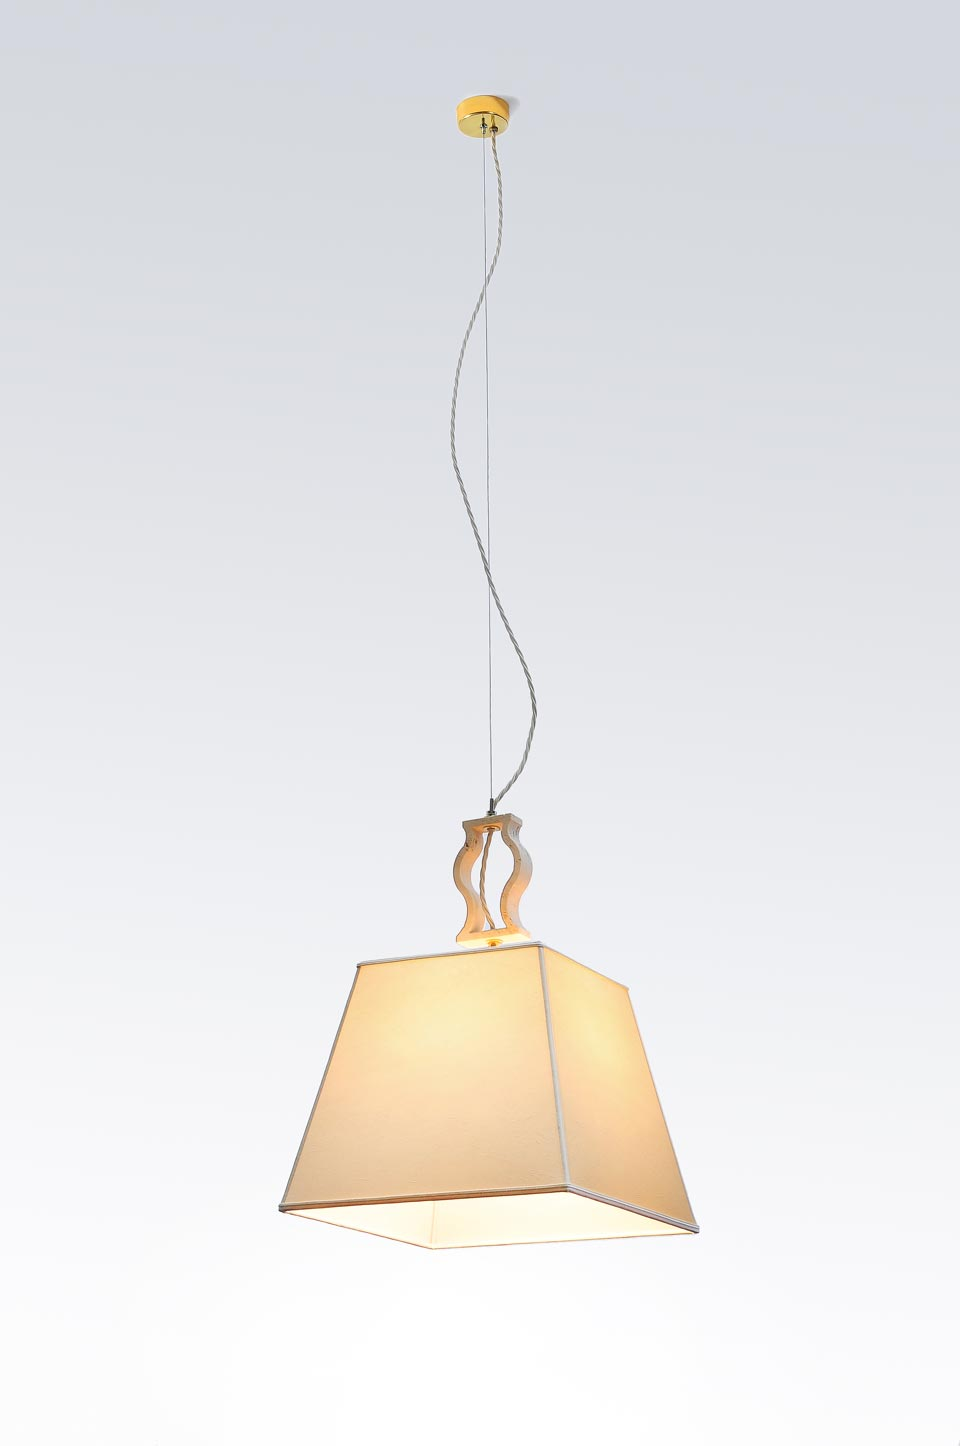 Suspension simple en marbre . Matlight.